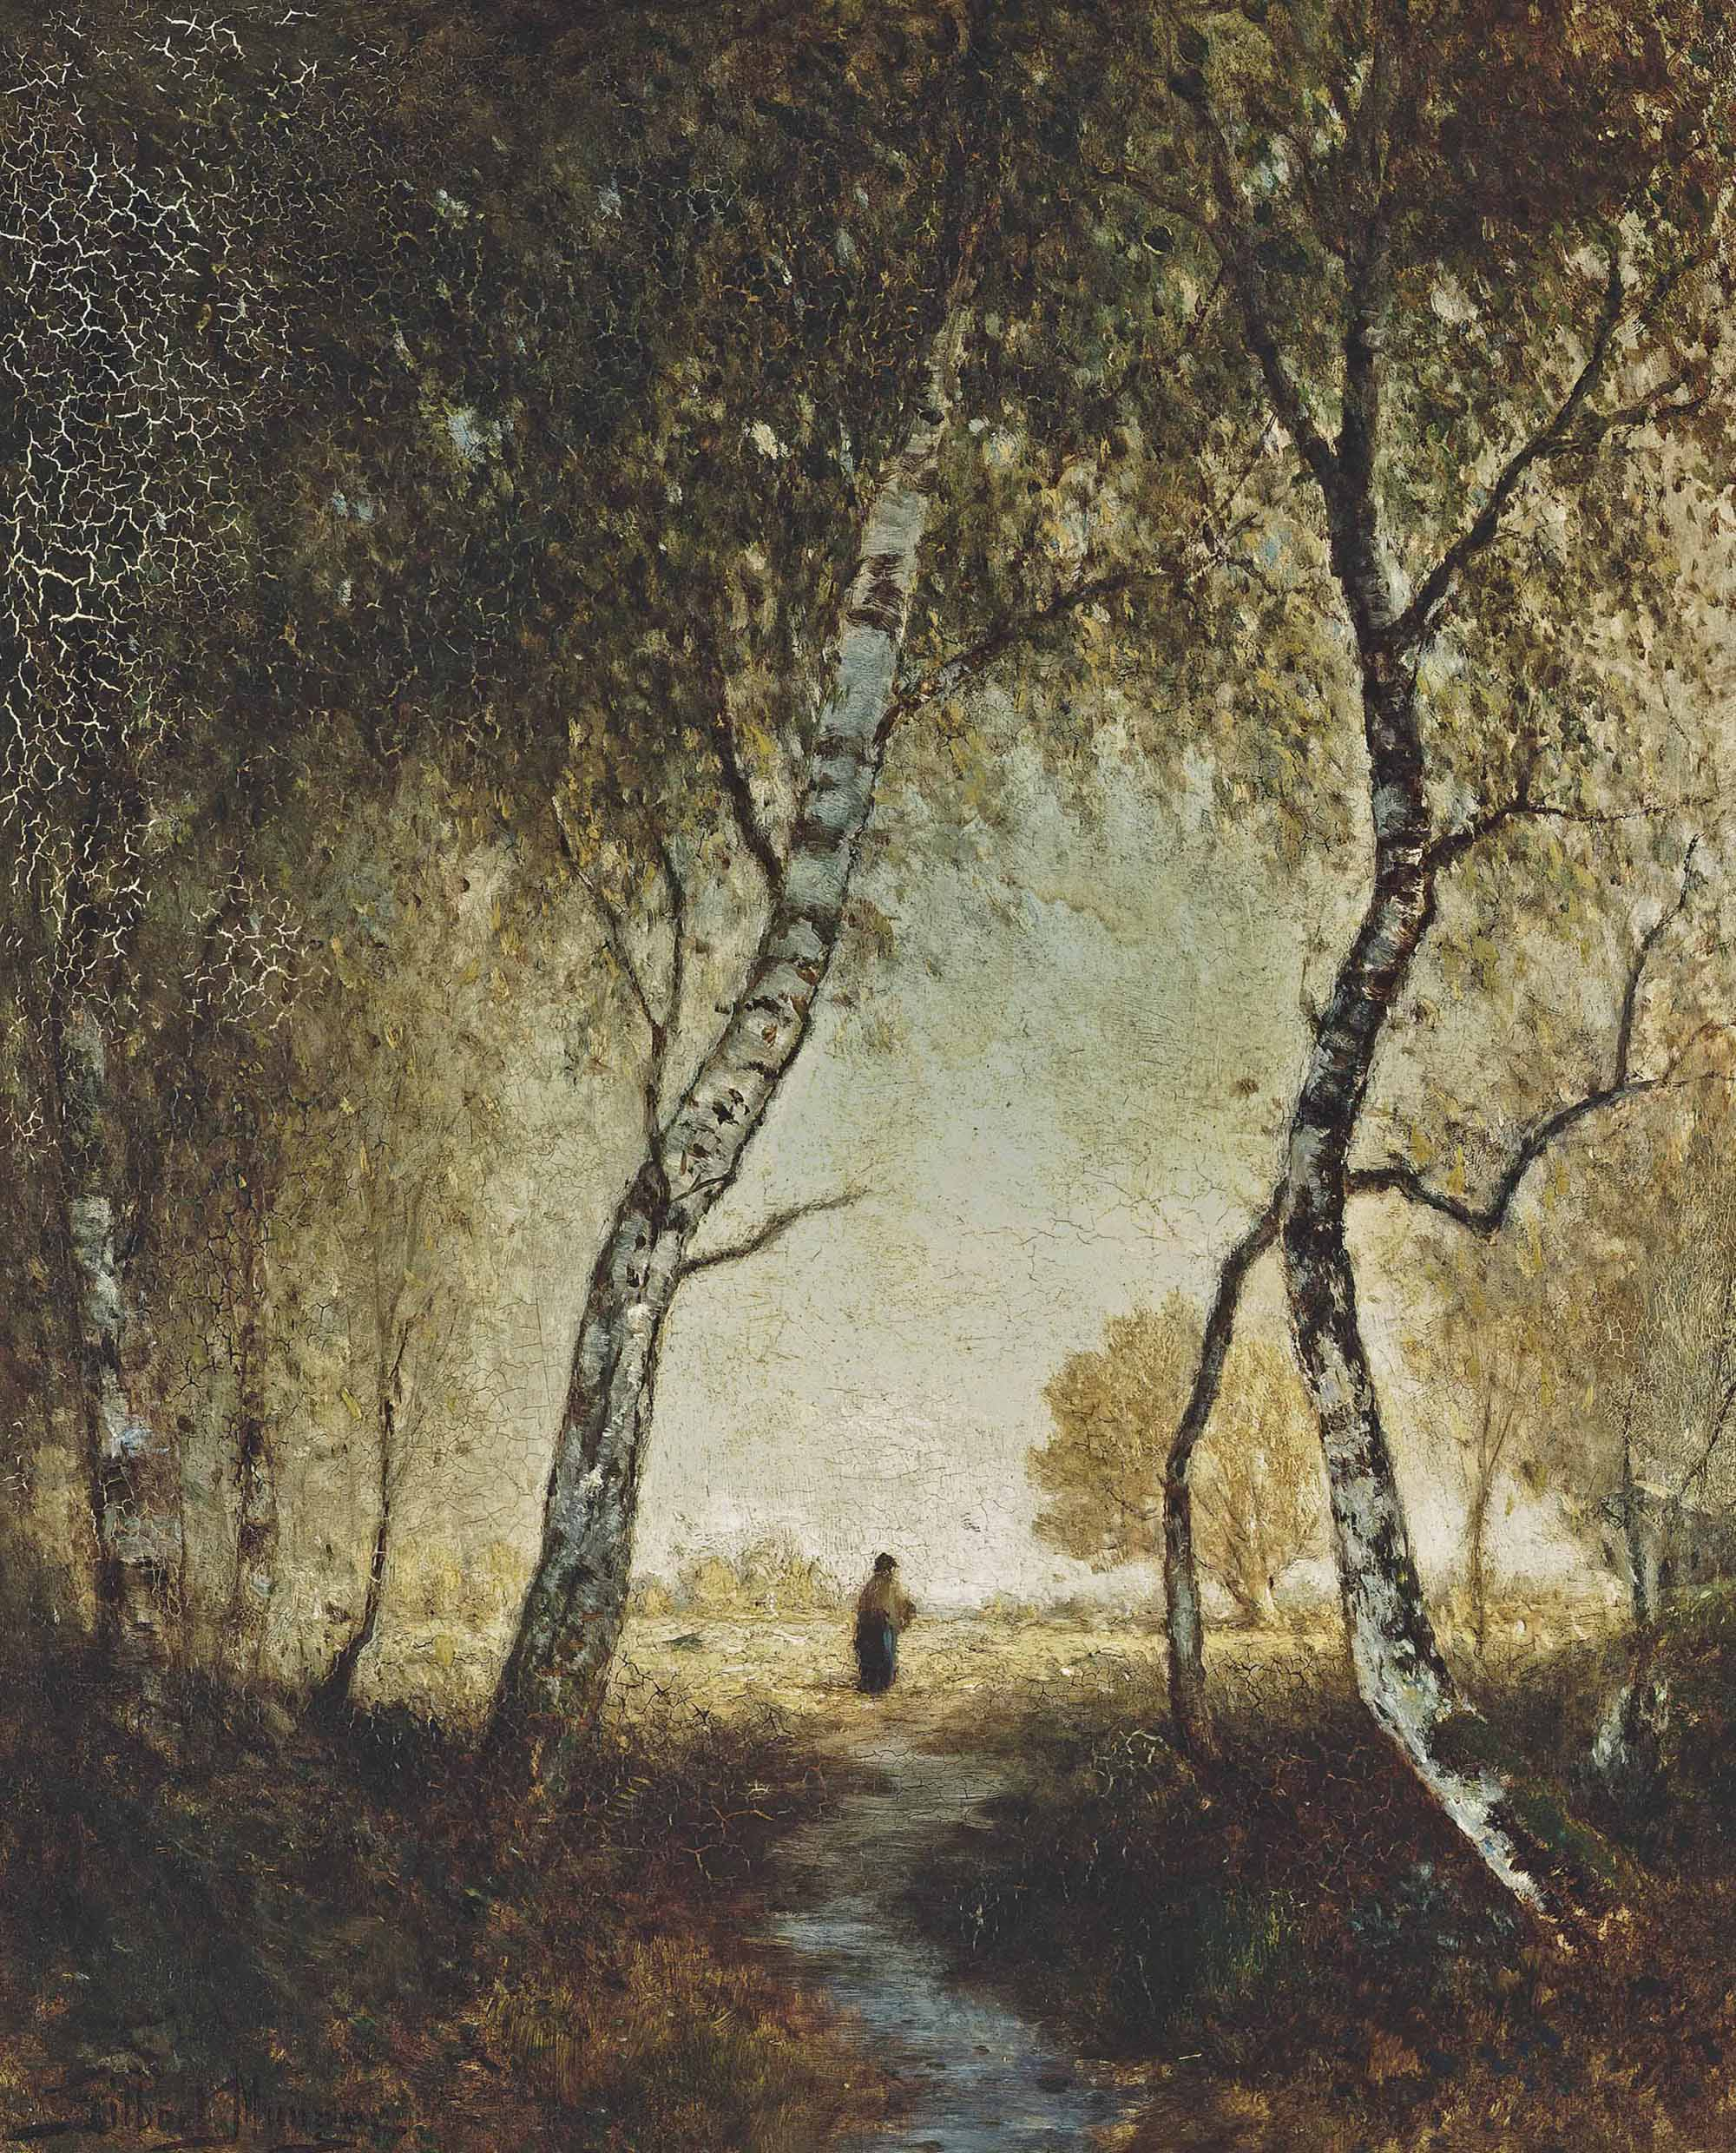 A peasant in a forest clearing